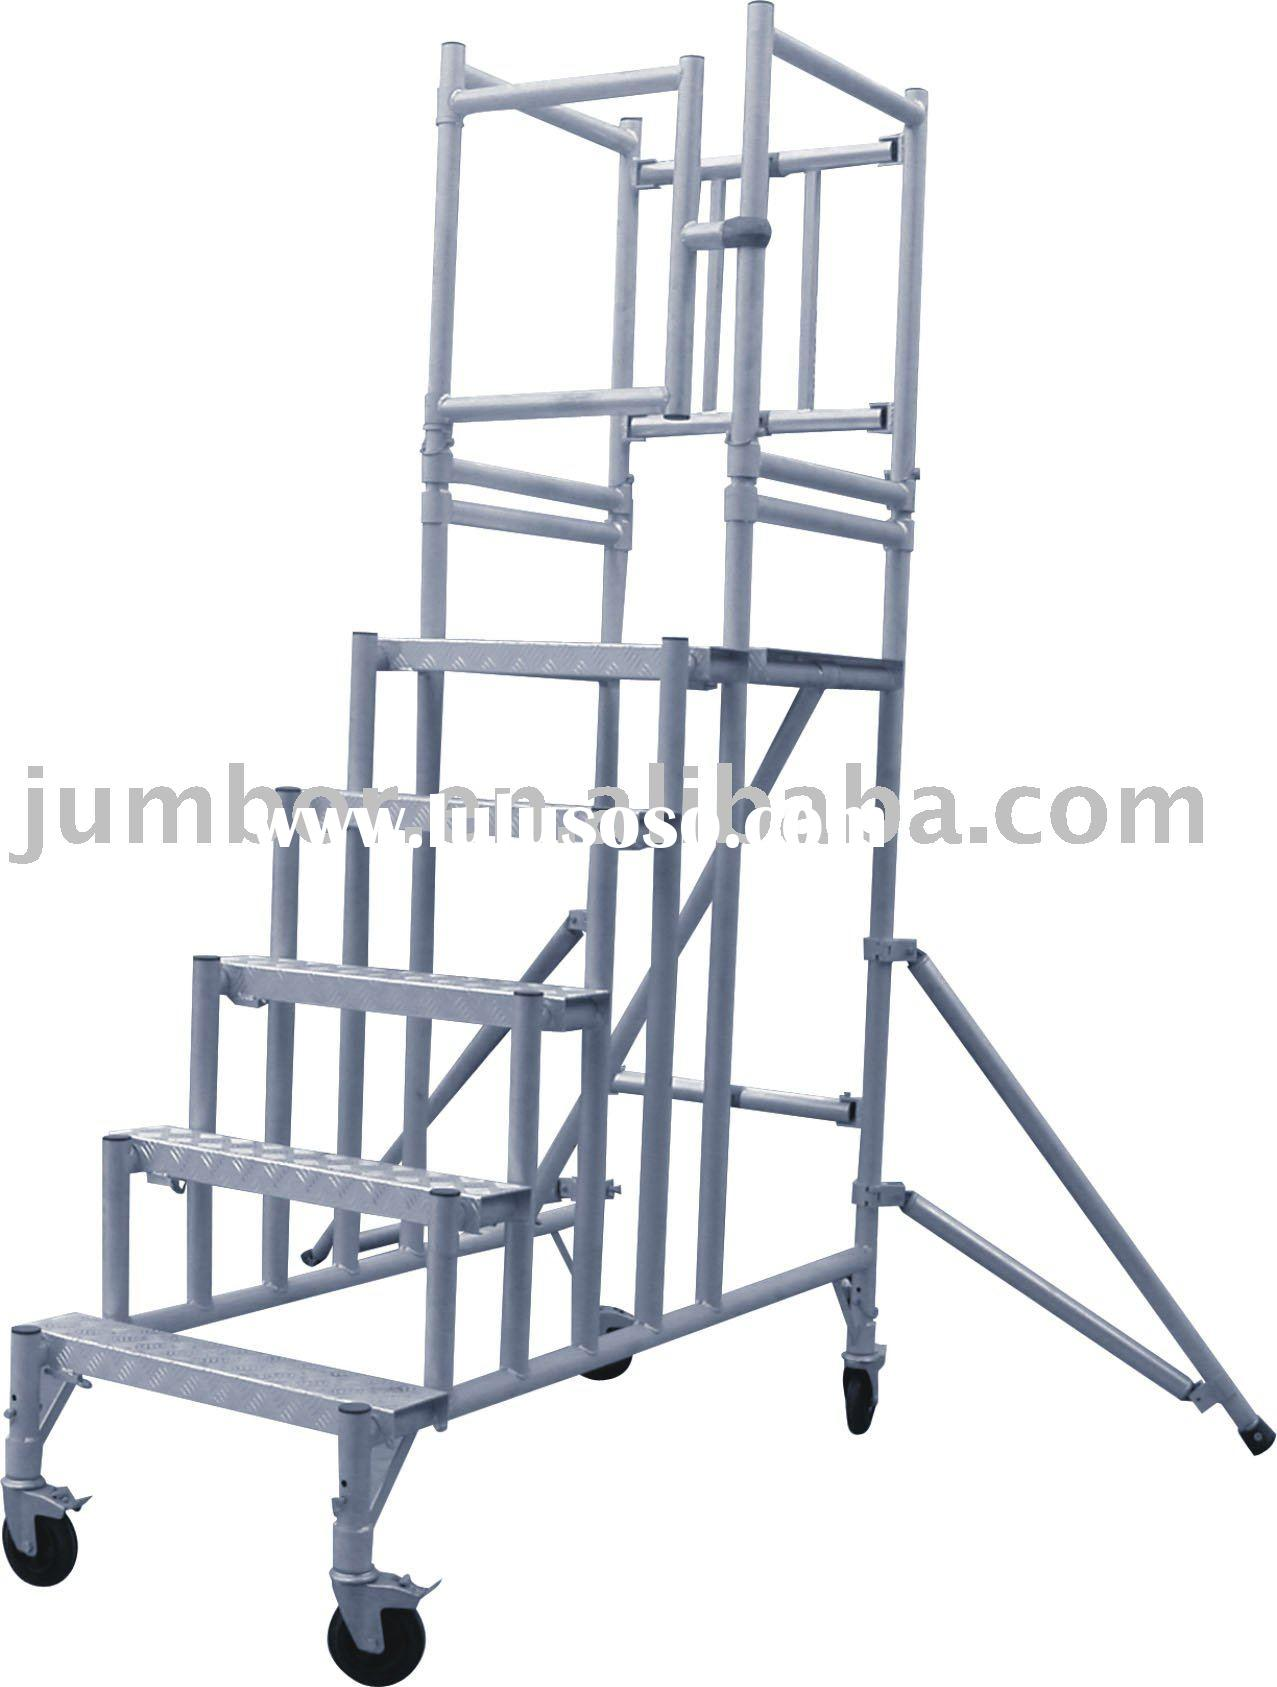 Aluminum Scaffolding Suppliers : Meter aluminum scaffolding system for sale price china